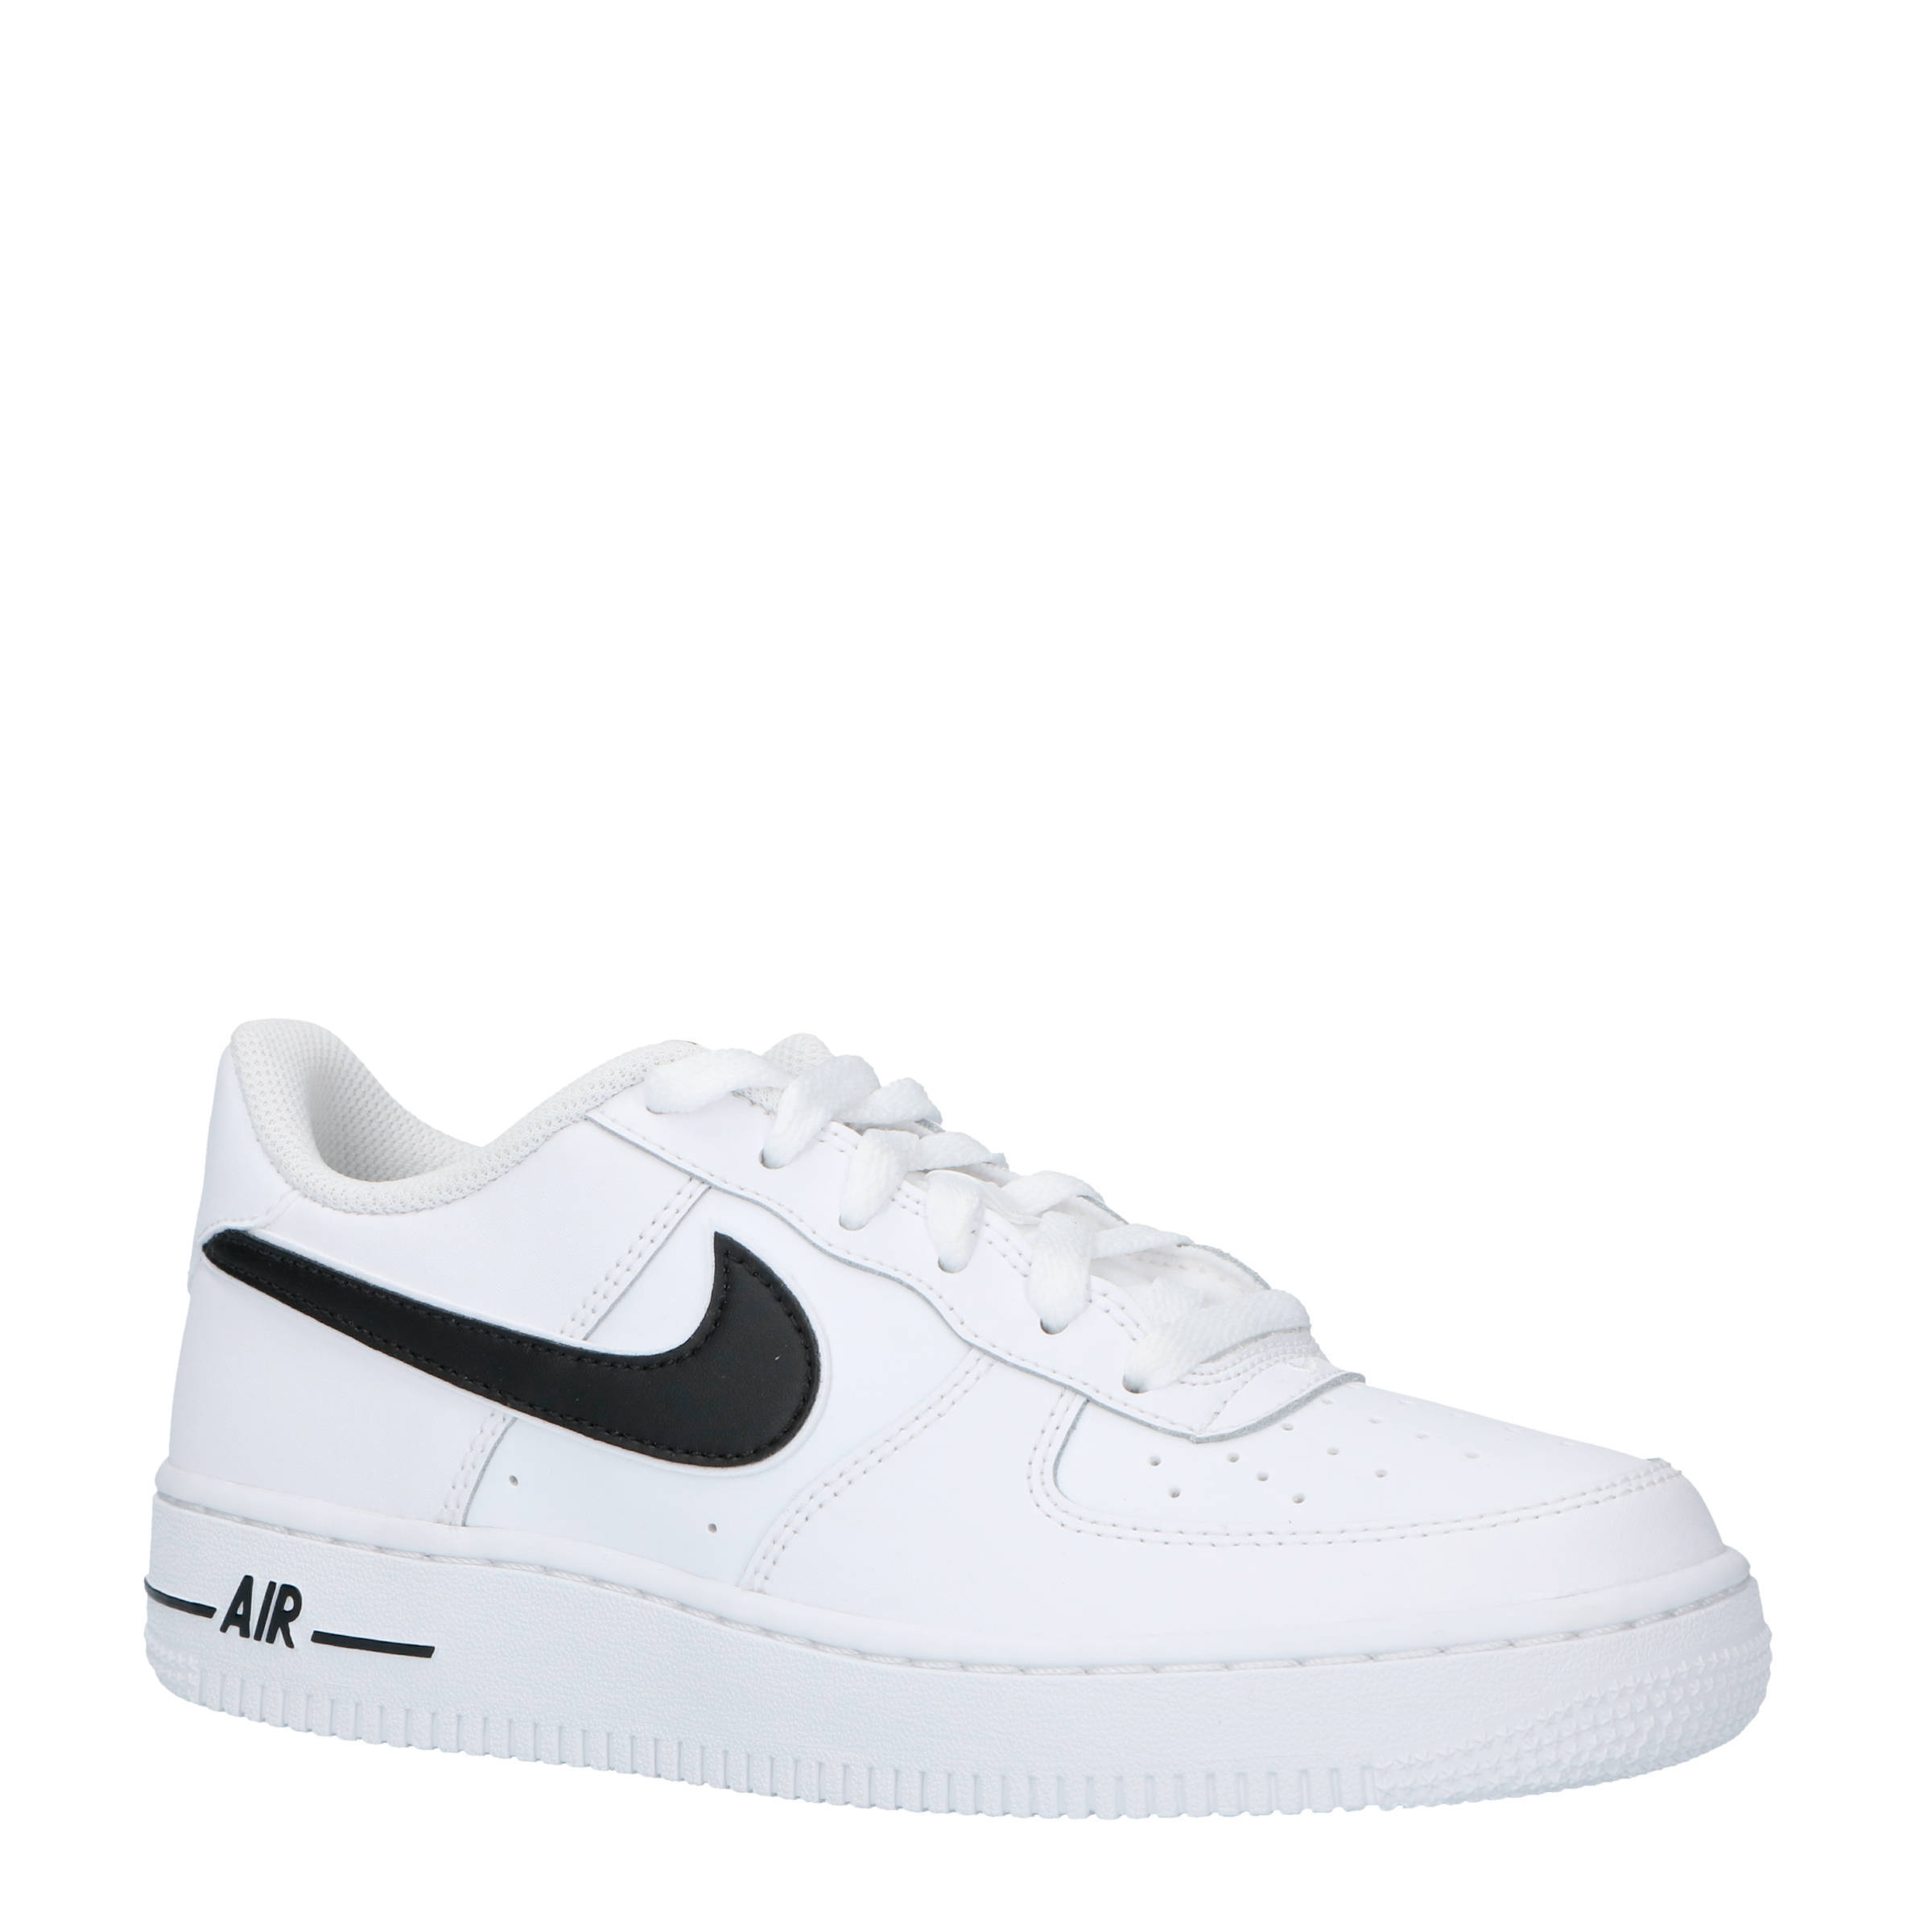 nike air force 1 wit dames|nike air force 1 wit dames Koop